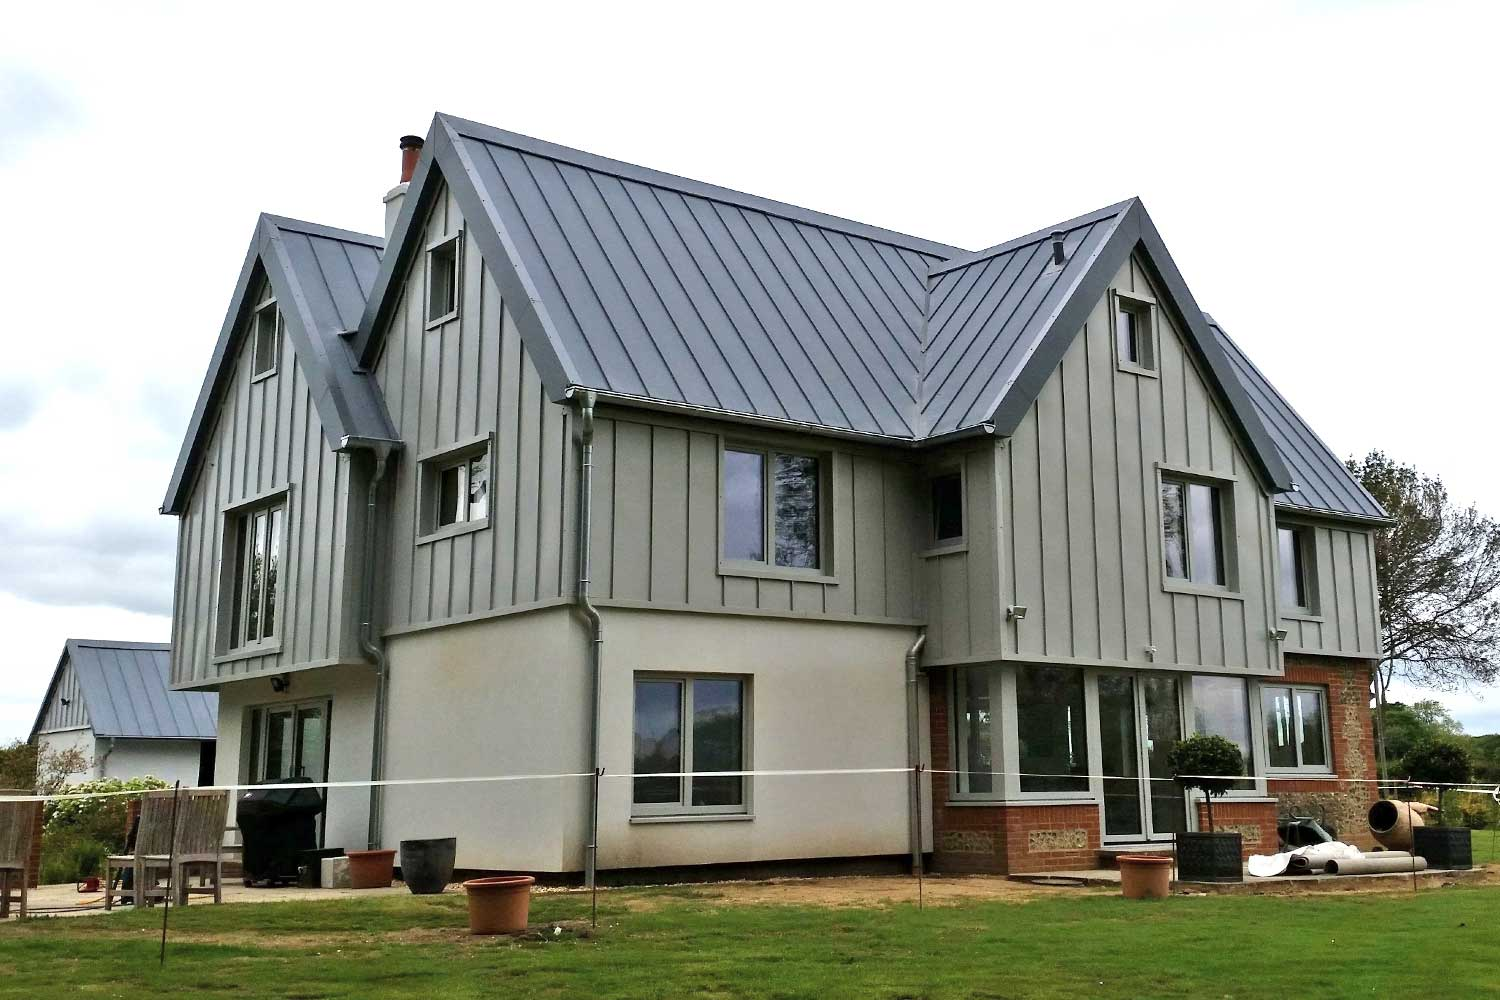 New home with cladding